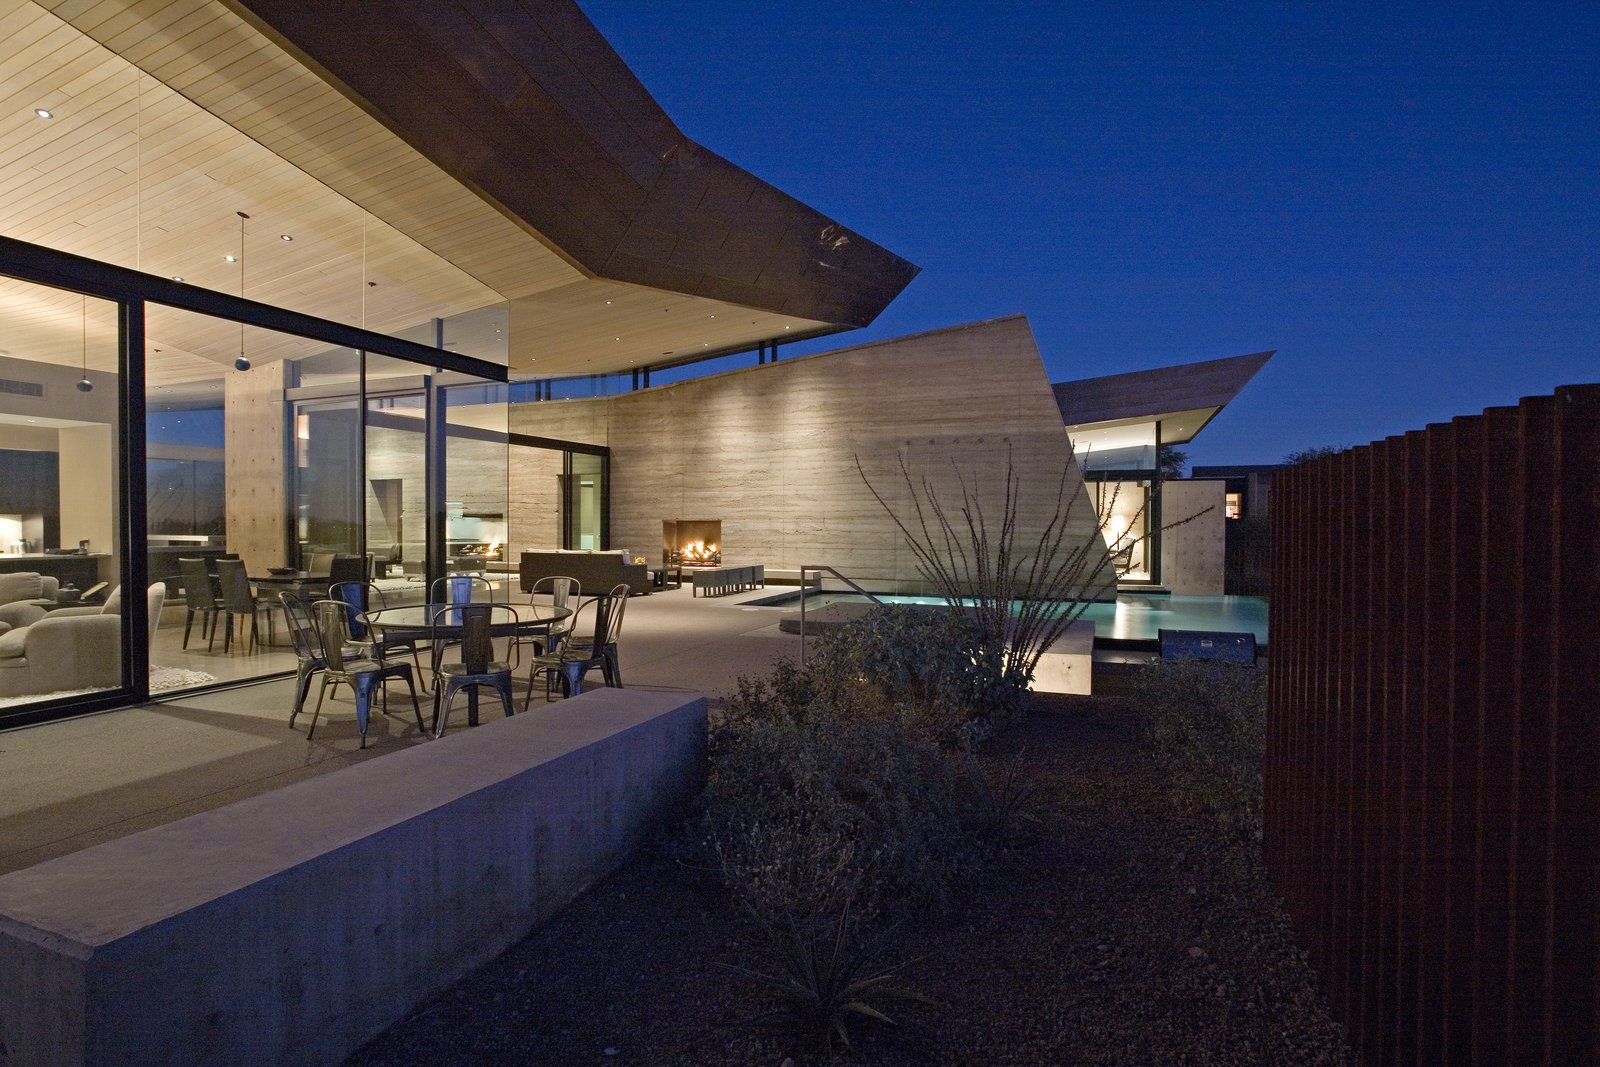 Outdoor, Trees, Hardscapes, Shrubs, Desert, Back Yard, Large Pools, Tubs, Shower, Infinity Pools, Tubs, Shower, Swimming Pools, Tubs, Shower, Concrete Pools, Tubs, Shower, Concrete Patio, Porch, Deck, Large Patio, Porch, Deck, Vertical Fences, Wall, and Metal Fences, Wall  Desert Wing